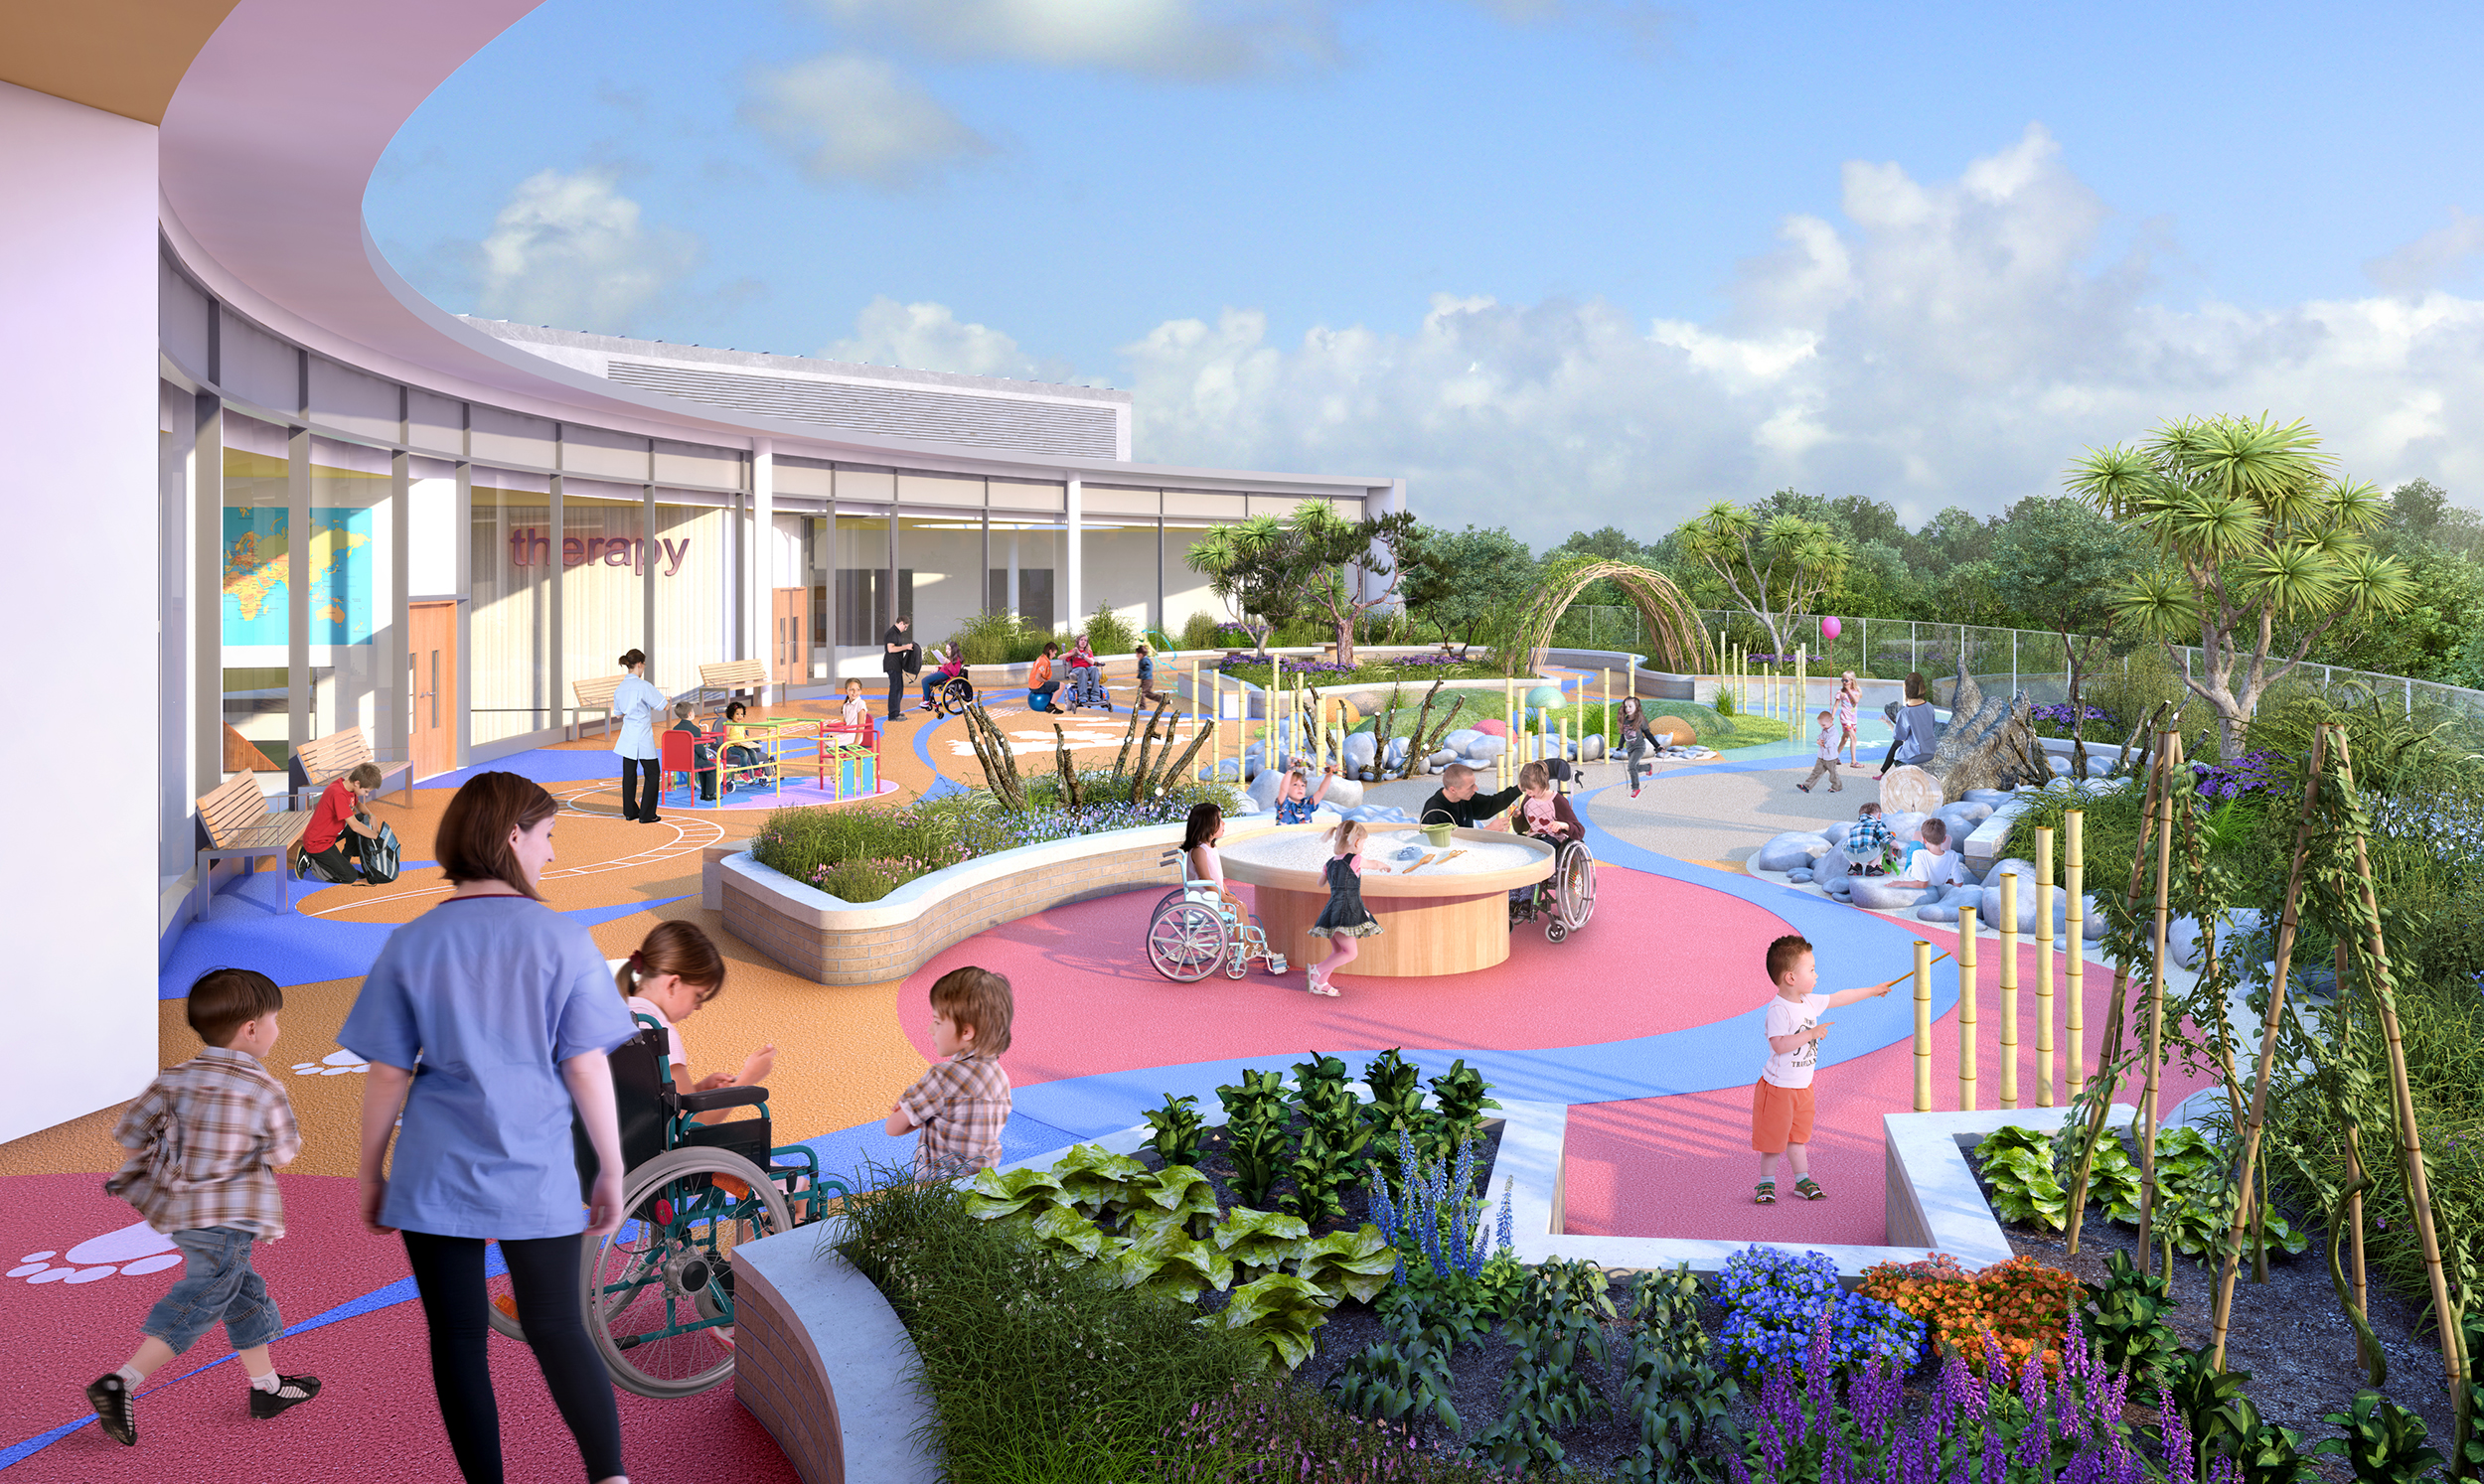 CGI-hospital-healthcare-childrens-roof-terrace.jpg